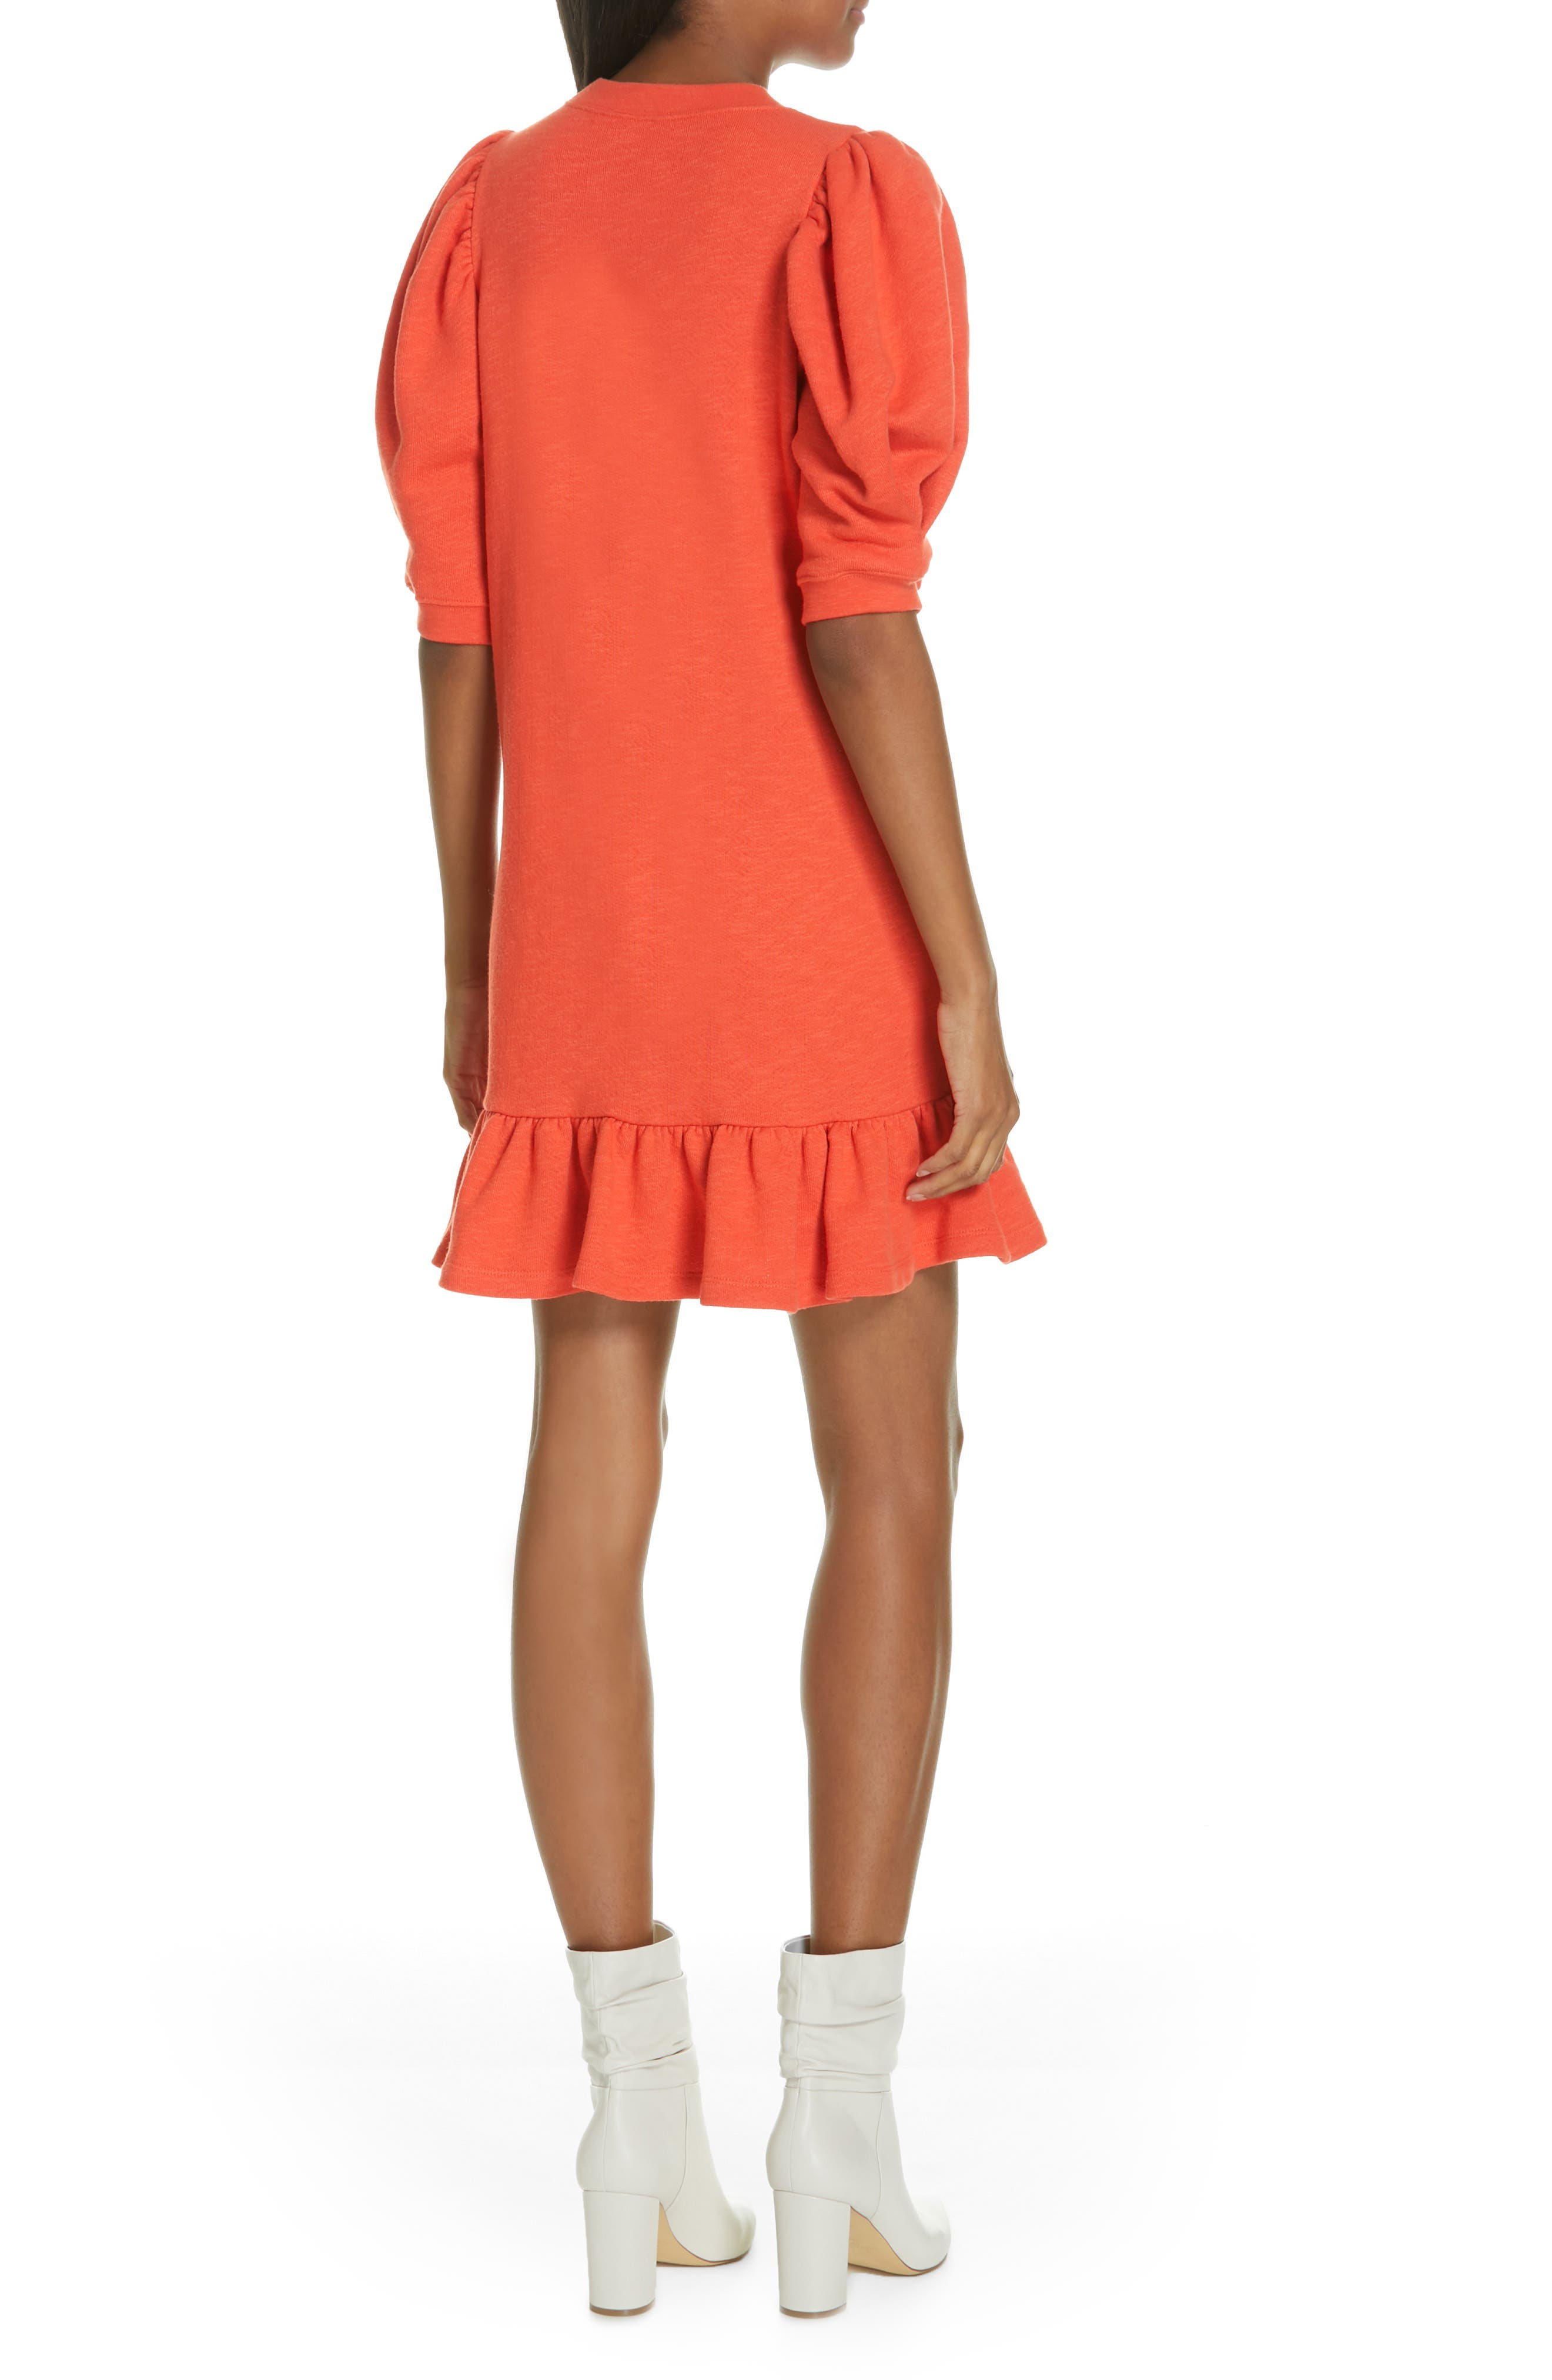 ULLA JOHNSON, Landry Puff Sleeve Sweatshirt Dress, Alternate thumbnail 2, color, CHILI